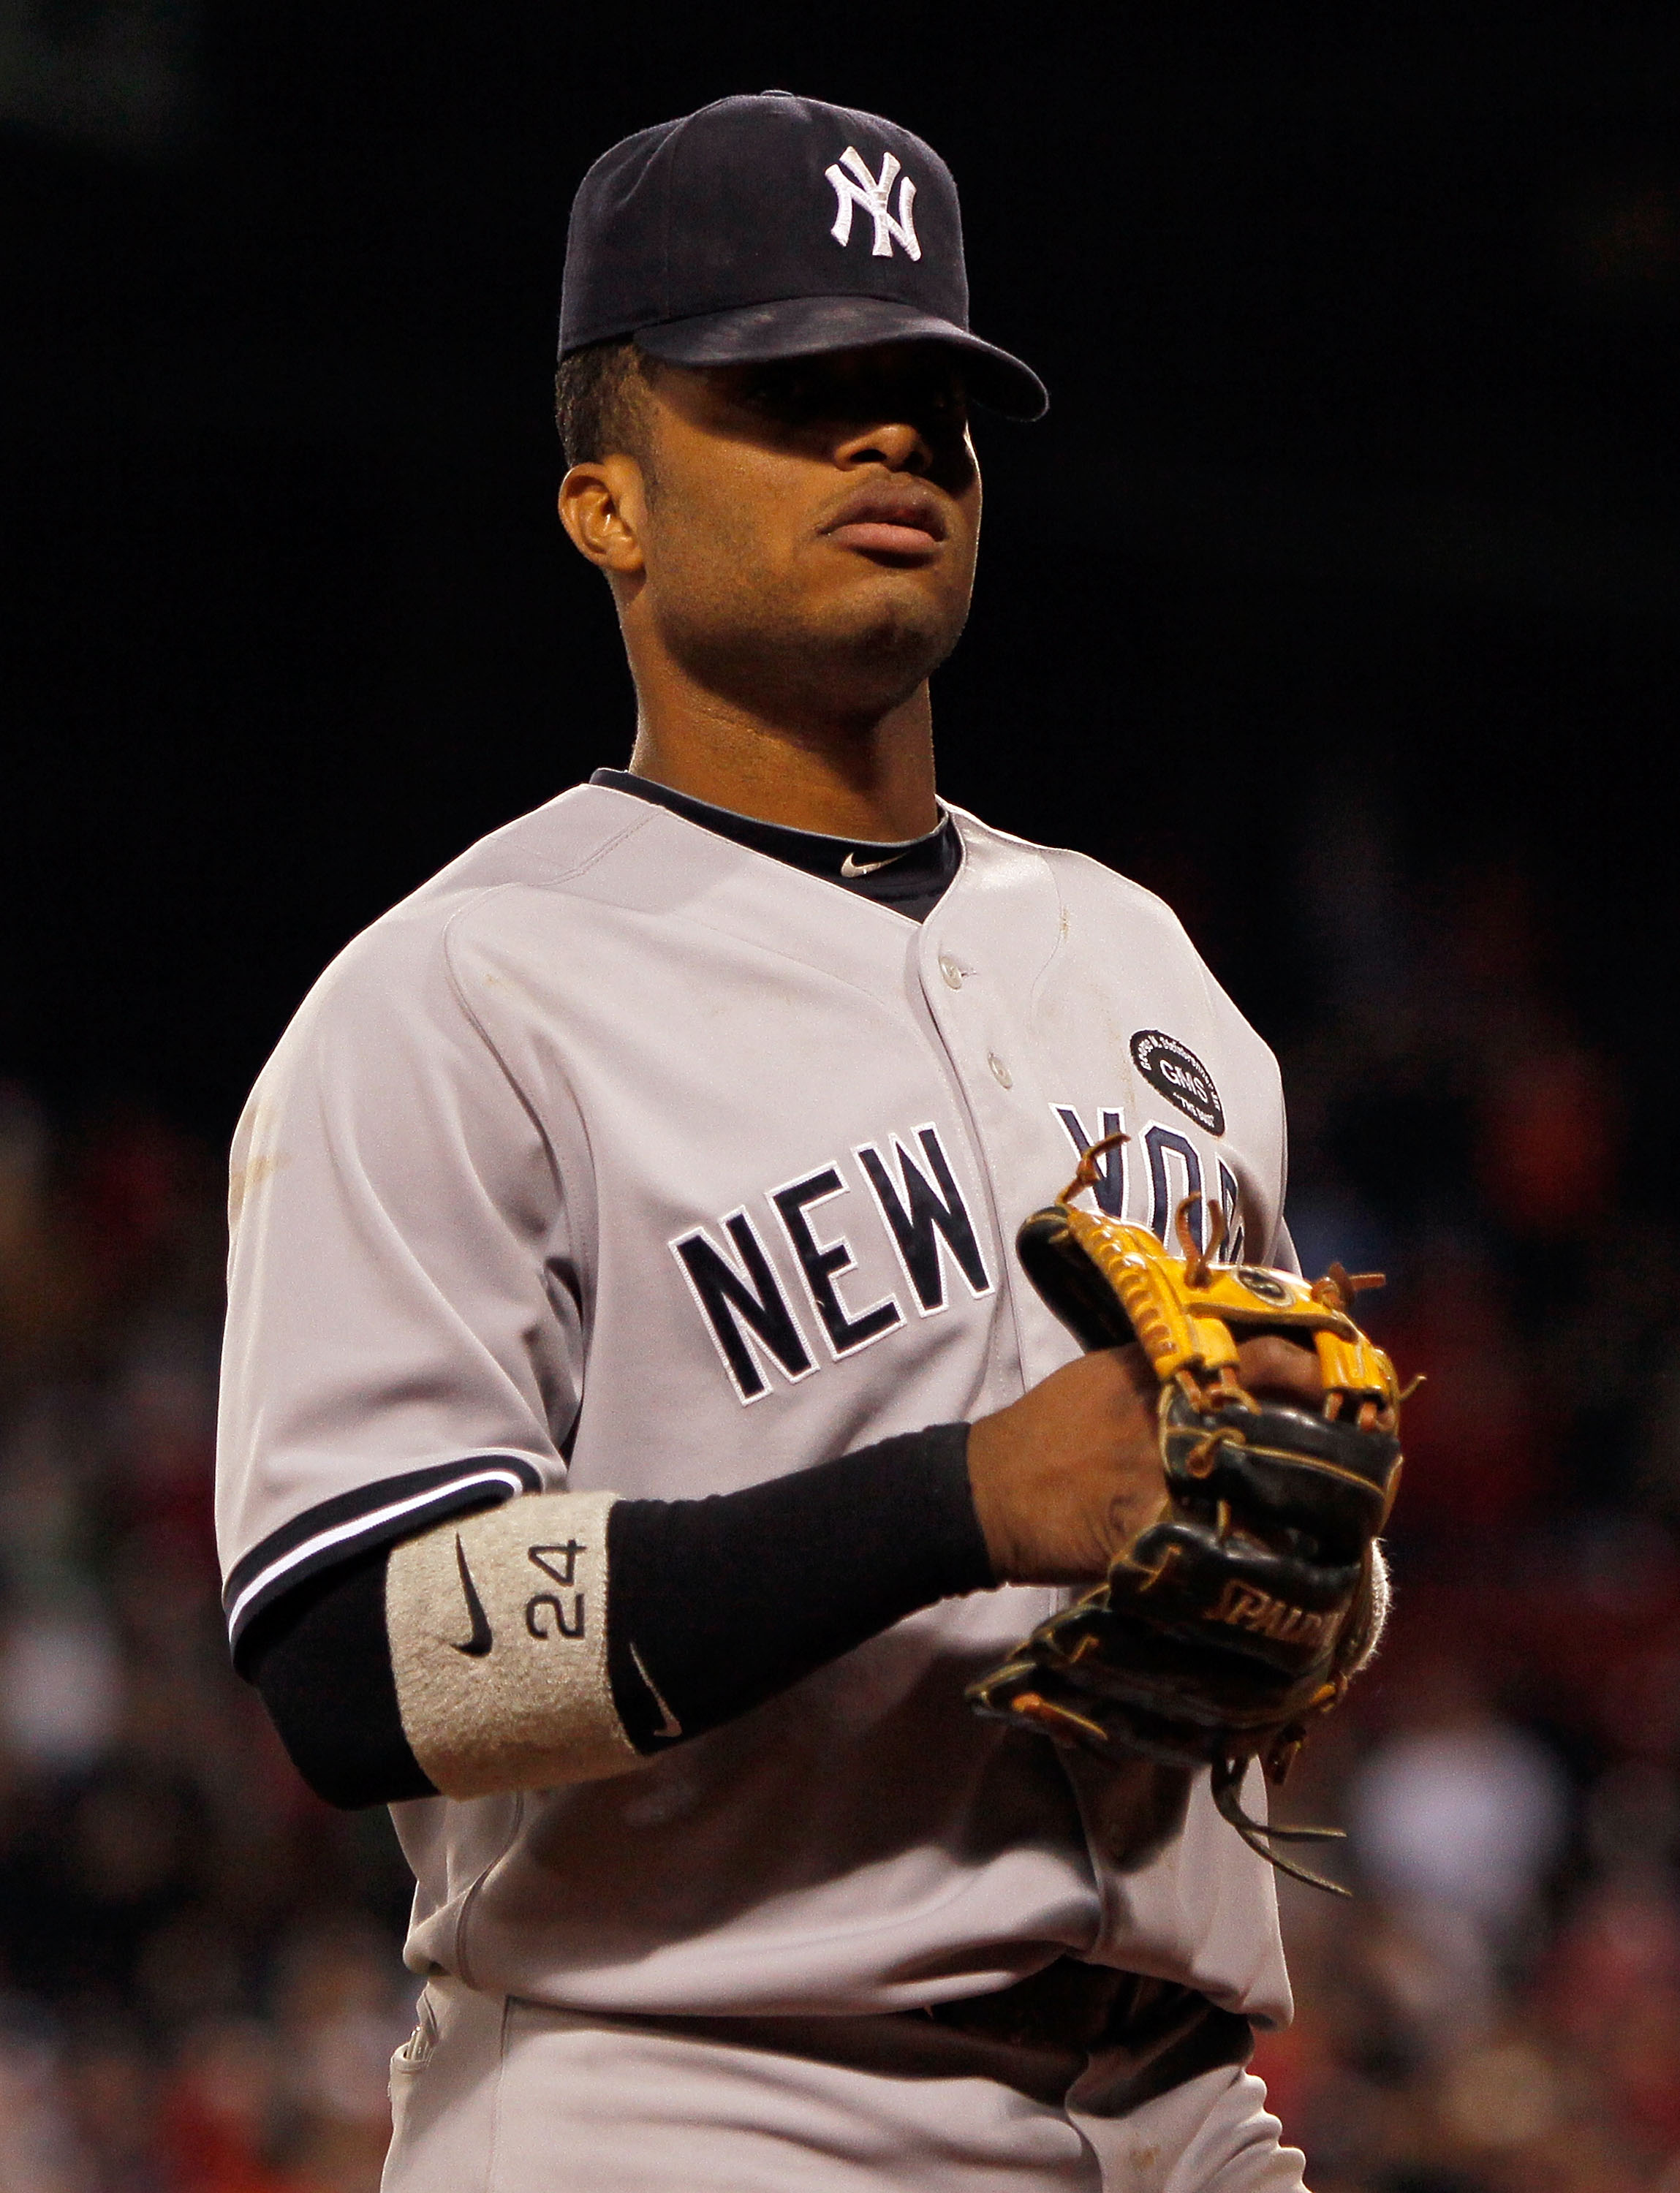 BOSTON - OCTOBER 2:  Robinson Cano #24 of the New York Yankees leaves the field after teammate Ivan Nova allowed a hit to Eric Petterson #3 of the Boston Red Sox in the tenth inning, which knocked in the winning run, in the second game of a doubleheader a